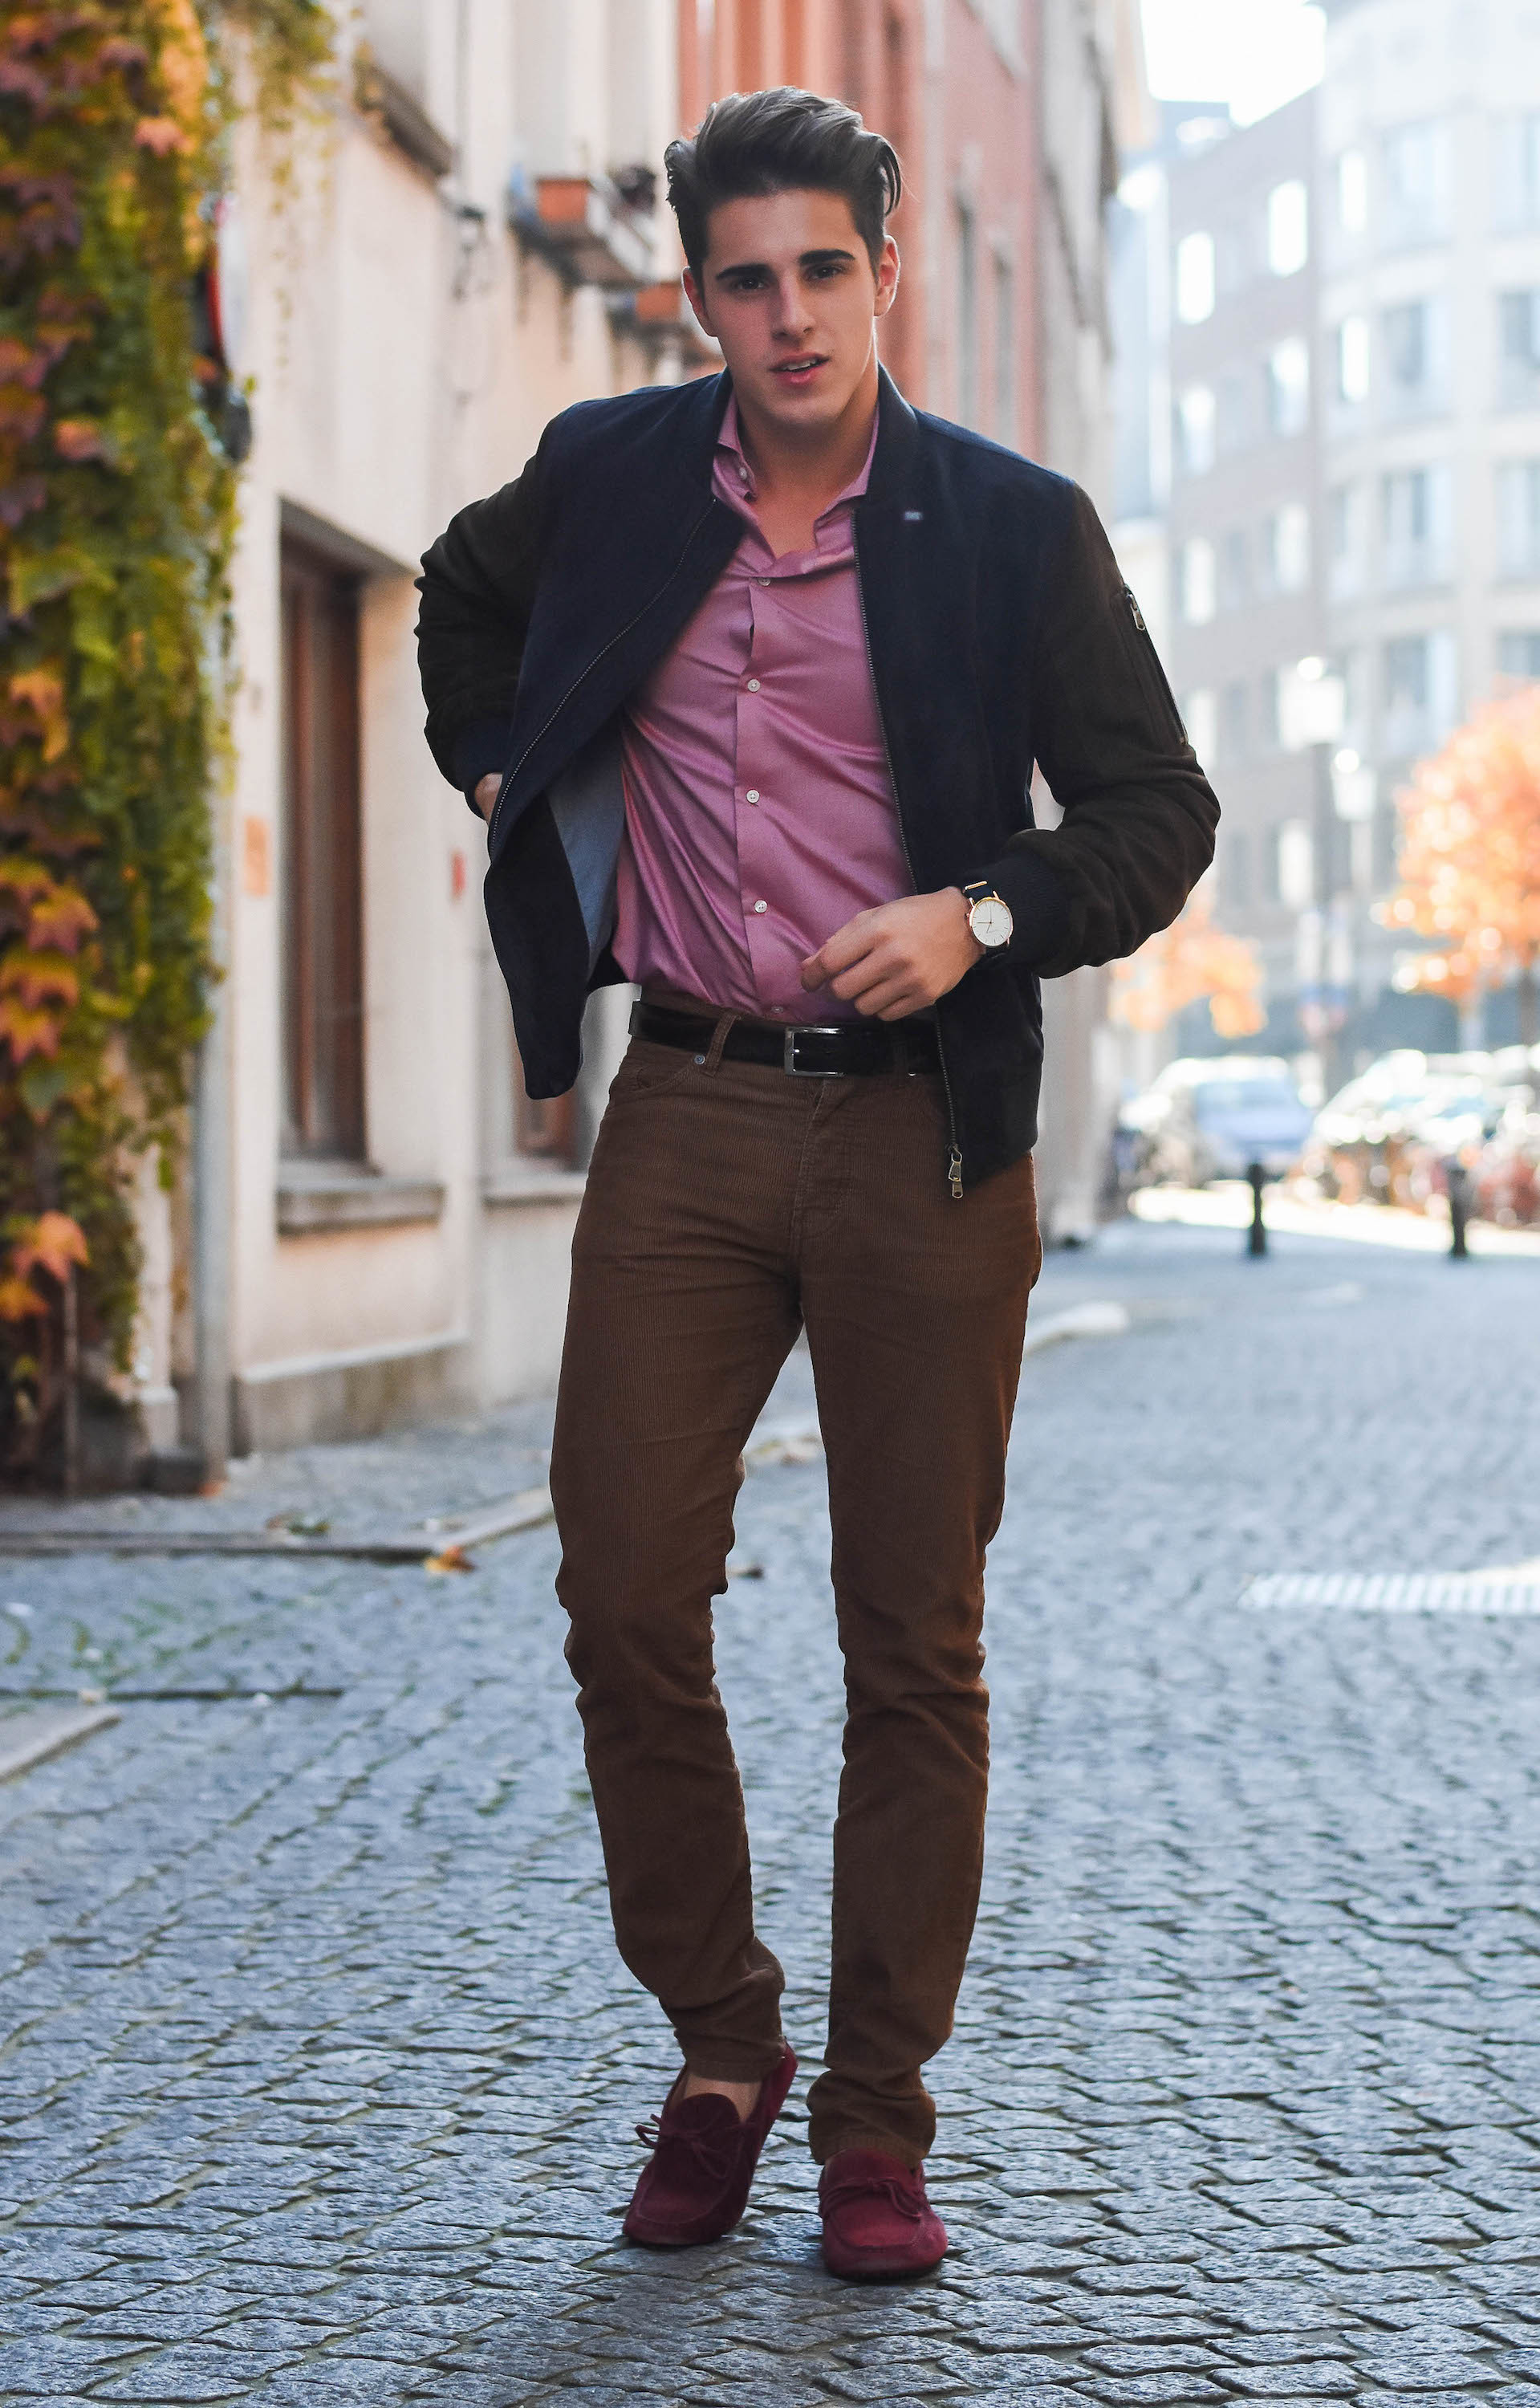 Casual Shoes To Wear With Button Down Shirt